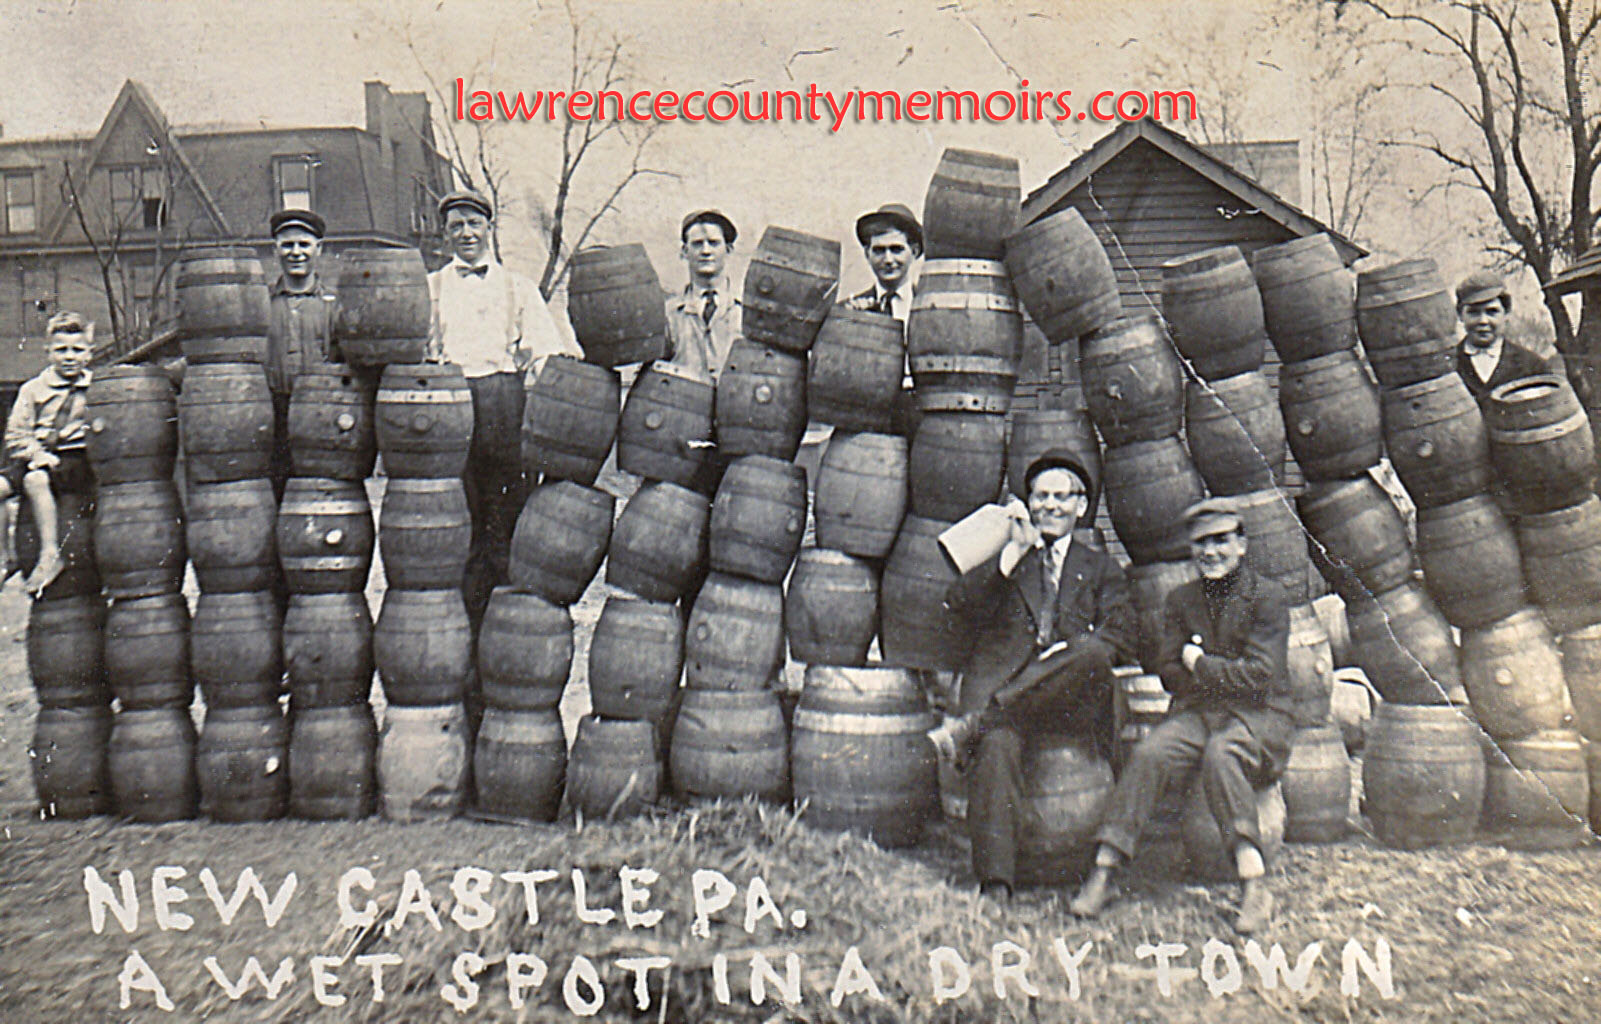 an overview of prohibition of 1920 1933 Repeal of prohibition in the united states which allowed the first legal beer sales since the beginning of prohibition on january 16, 1920 in 1933 state.